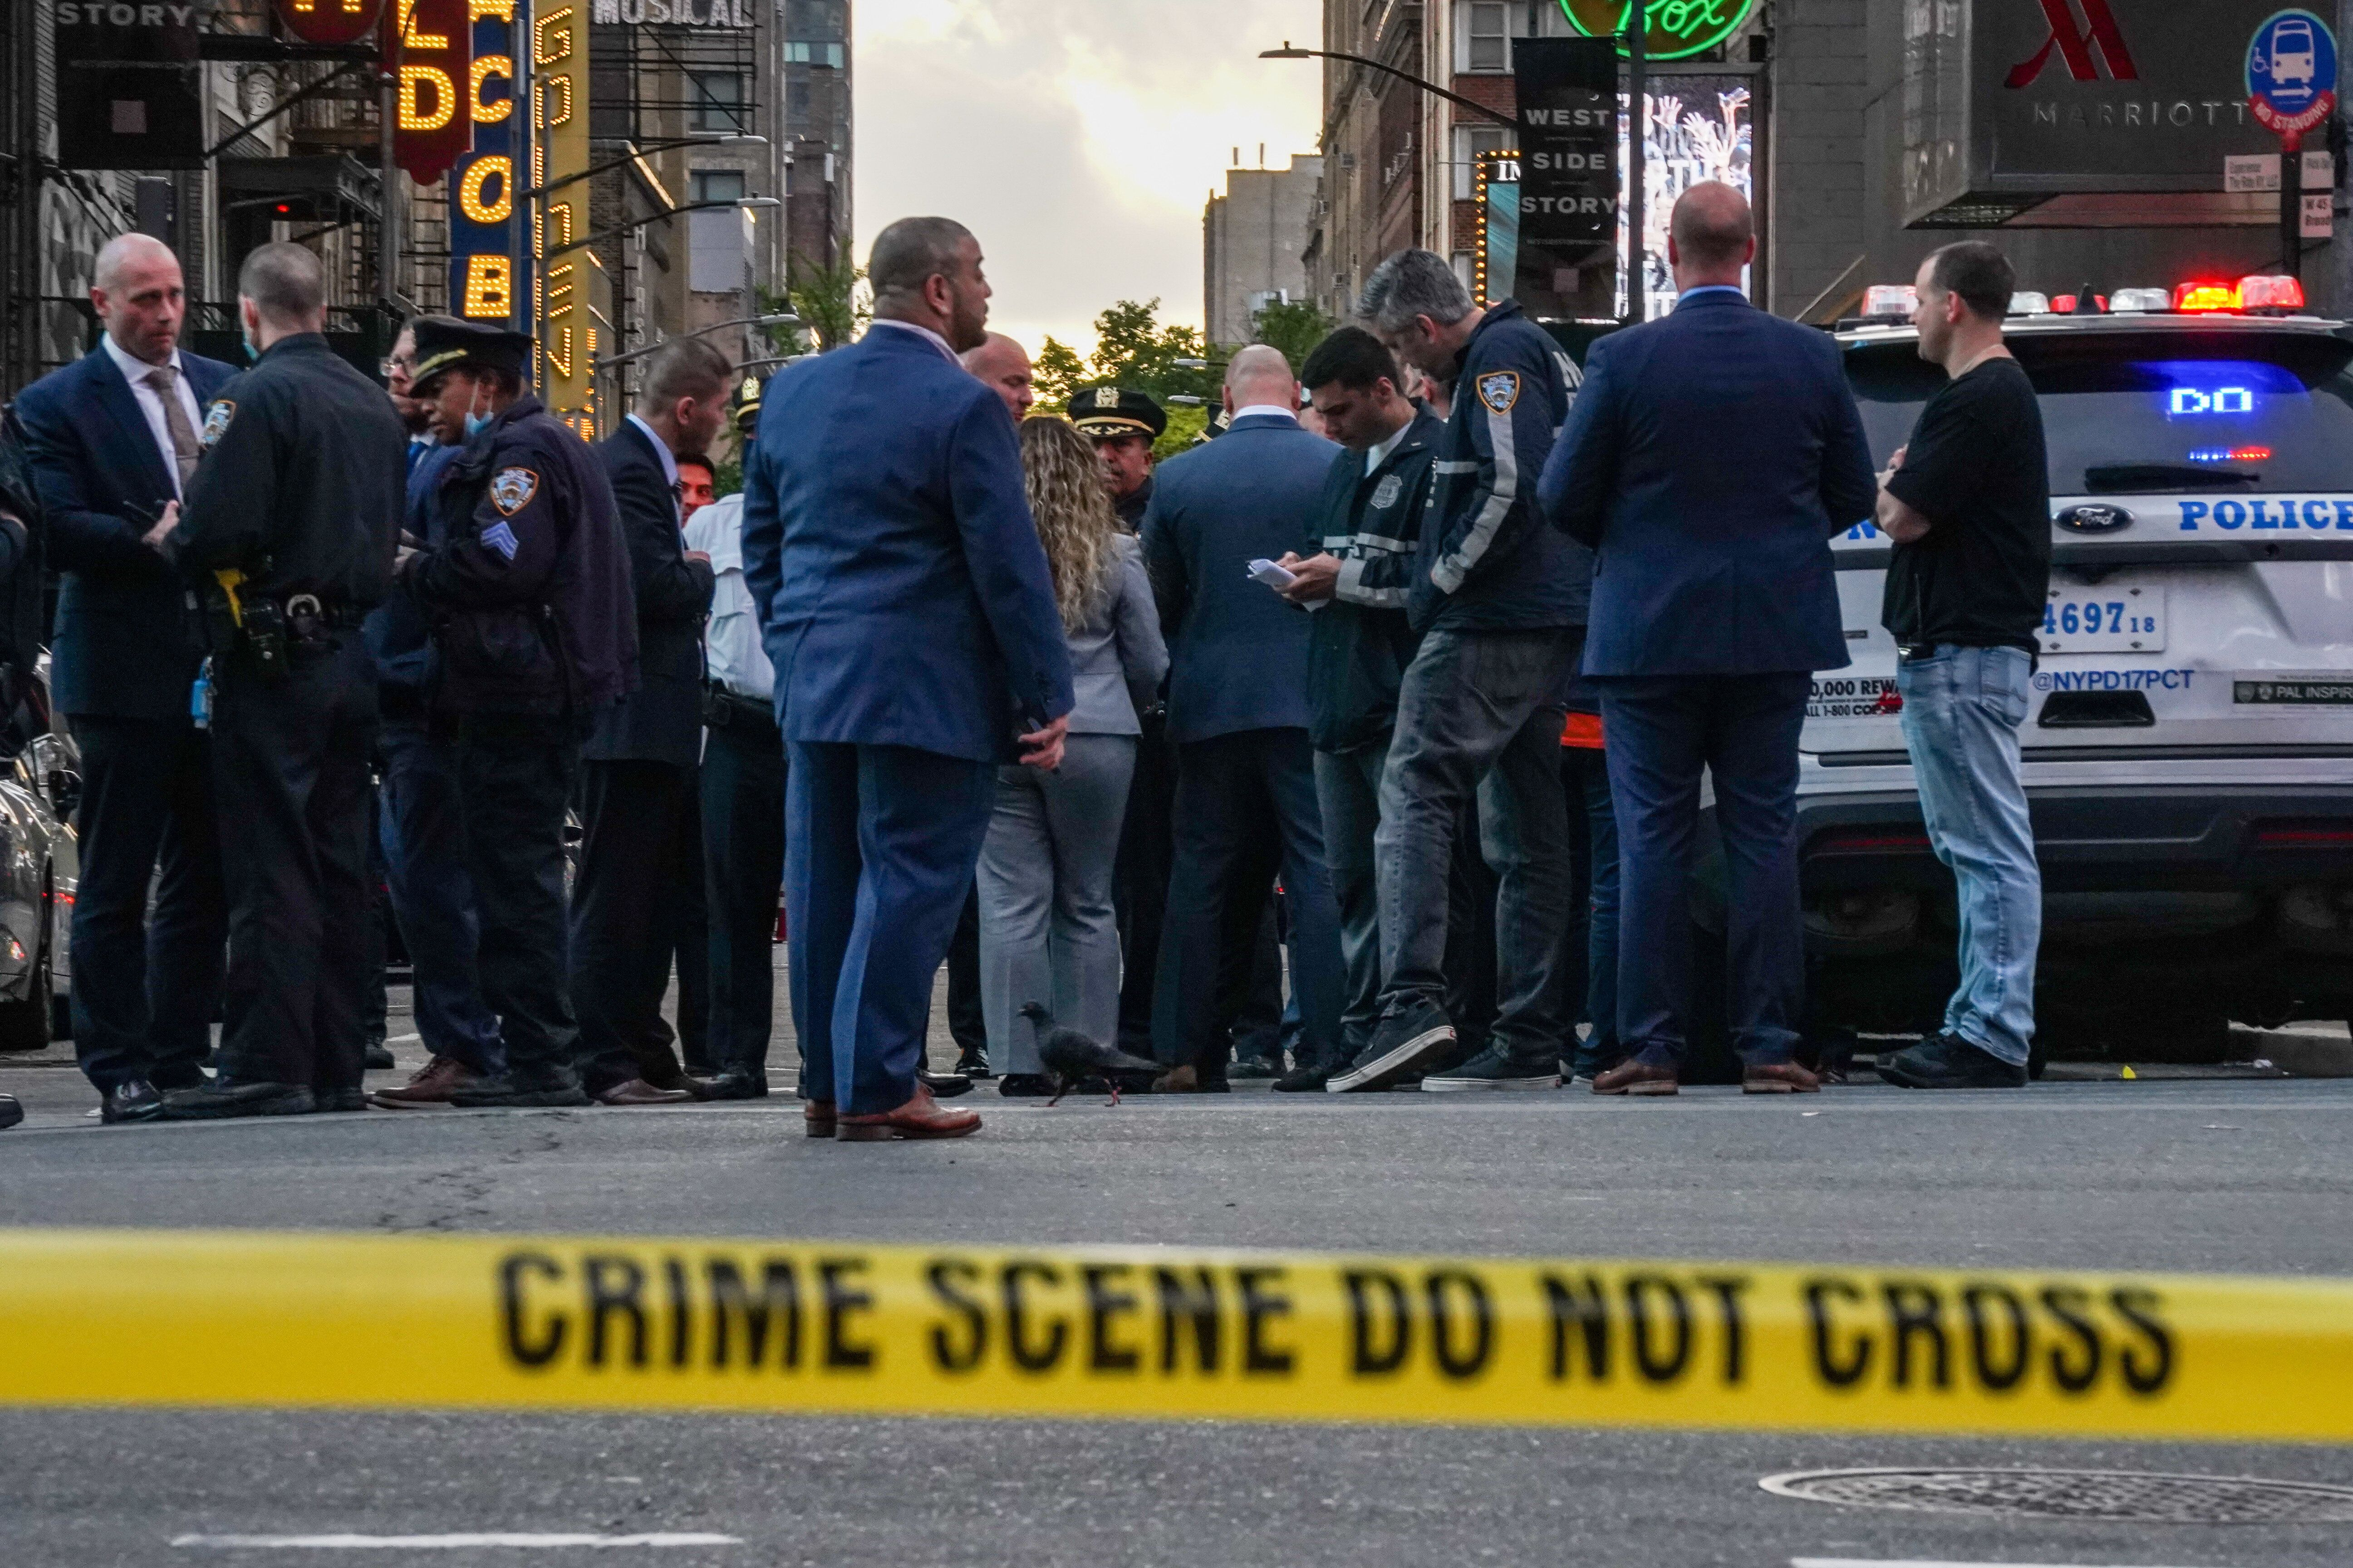 New York City's Times Square on Saturday after a shooting left three people injured.